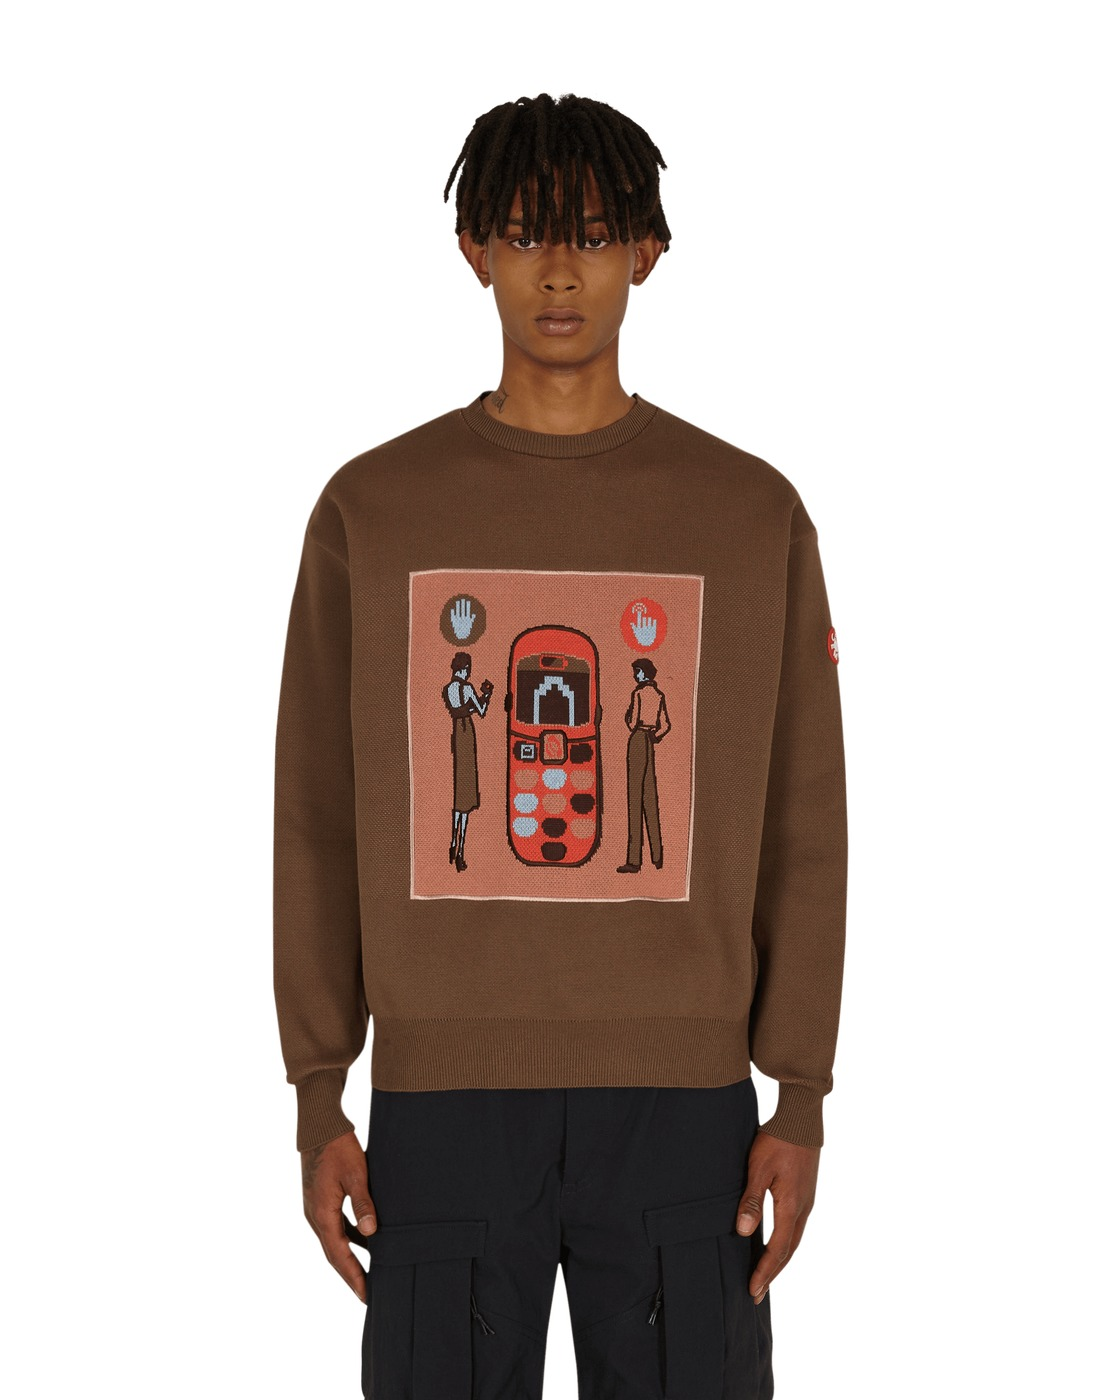 Photo: Cav Empt Back View Knit #2 Sweater Brown